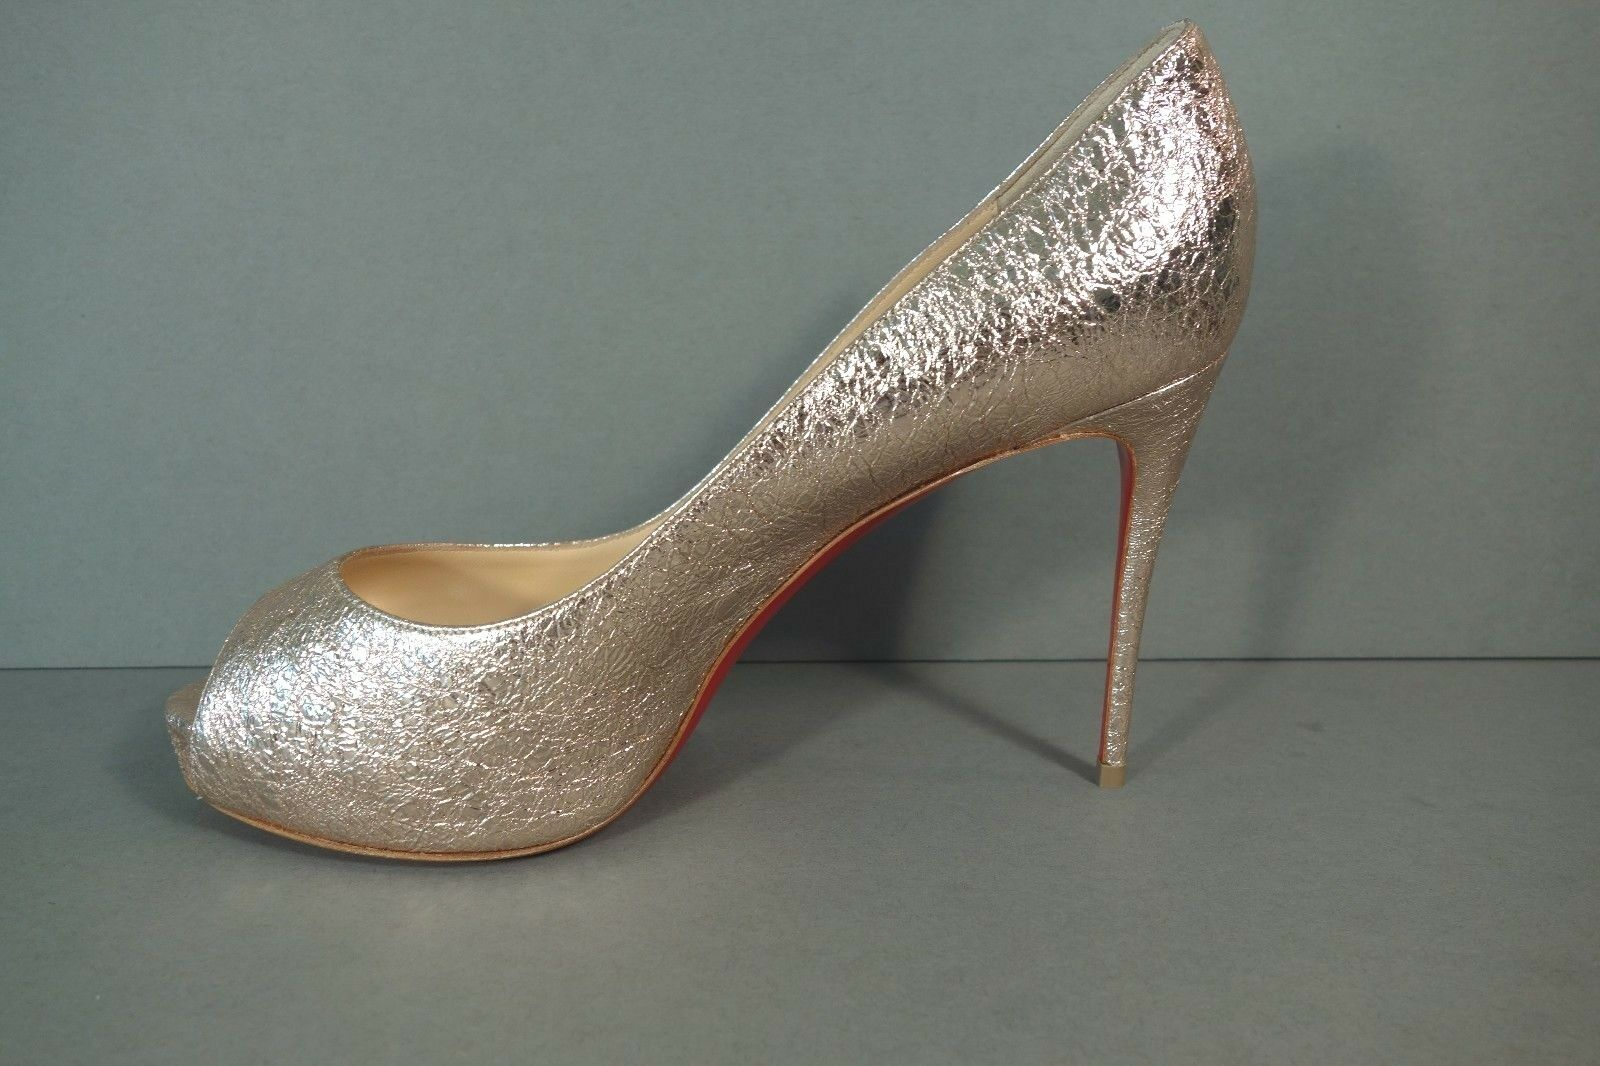 factory price 2e286 3d29b Louboutin 39 Very Prive 100 Rose Gold Platform PUMPS HEELS PEEP Toe Shoe